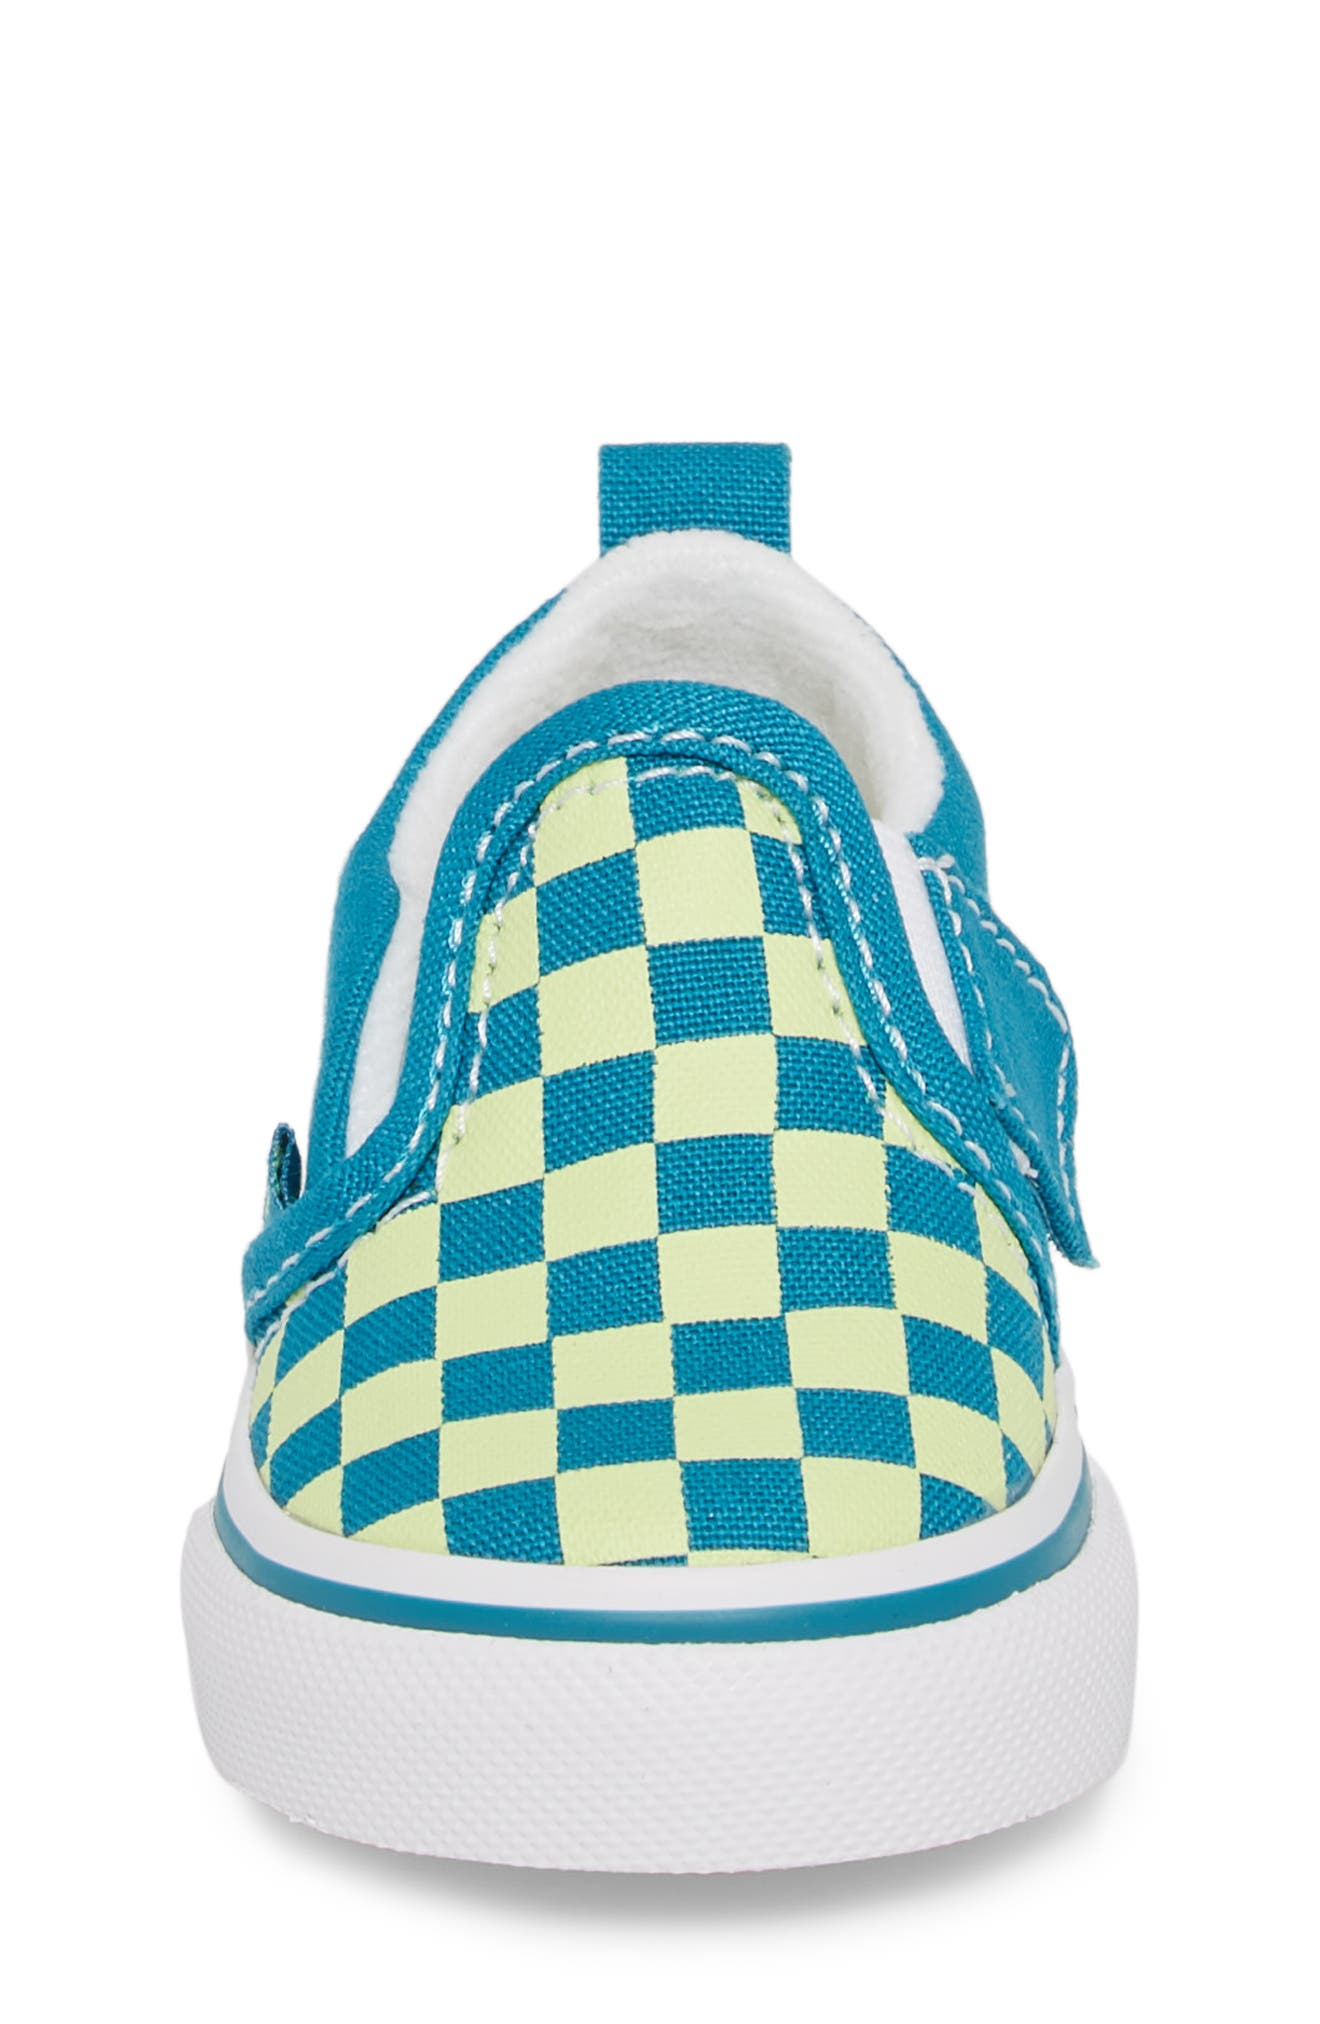 Slip-On Crib Shoe,                             Alternate thumbnail 4, color,                             ENAMEL BLUE/ SHARP GREEN